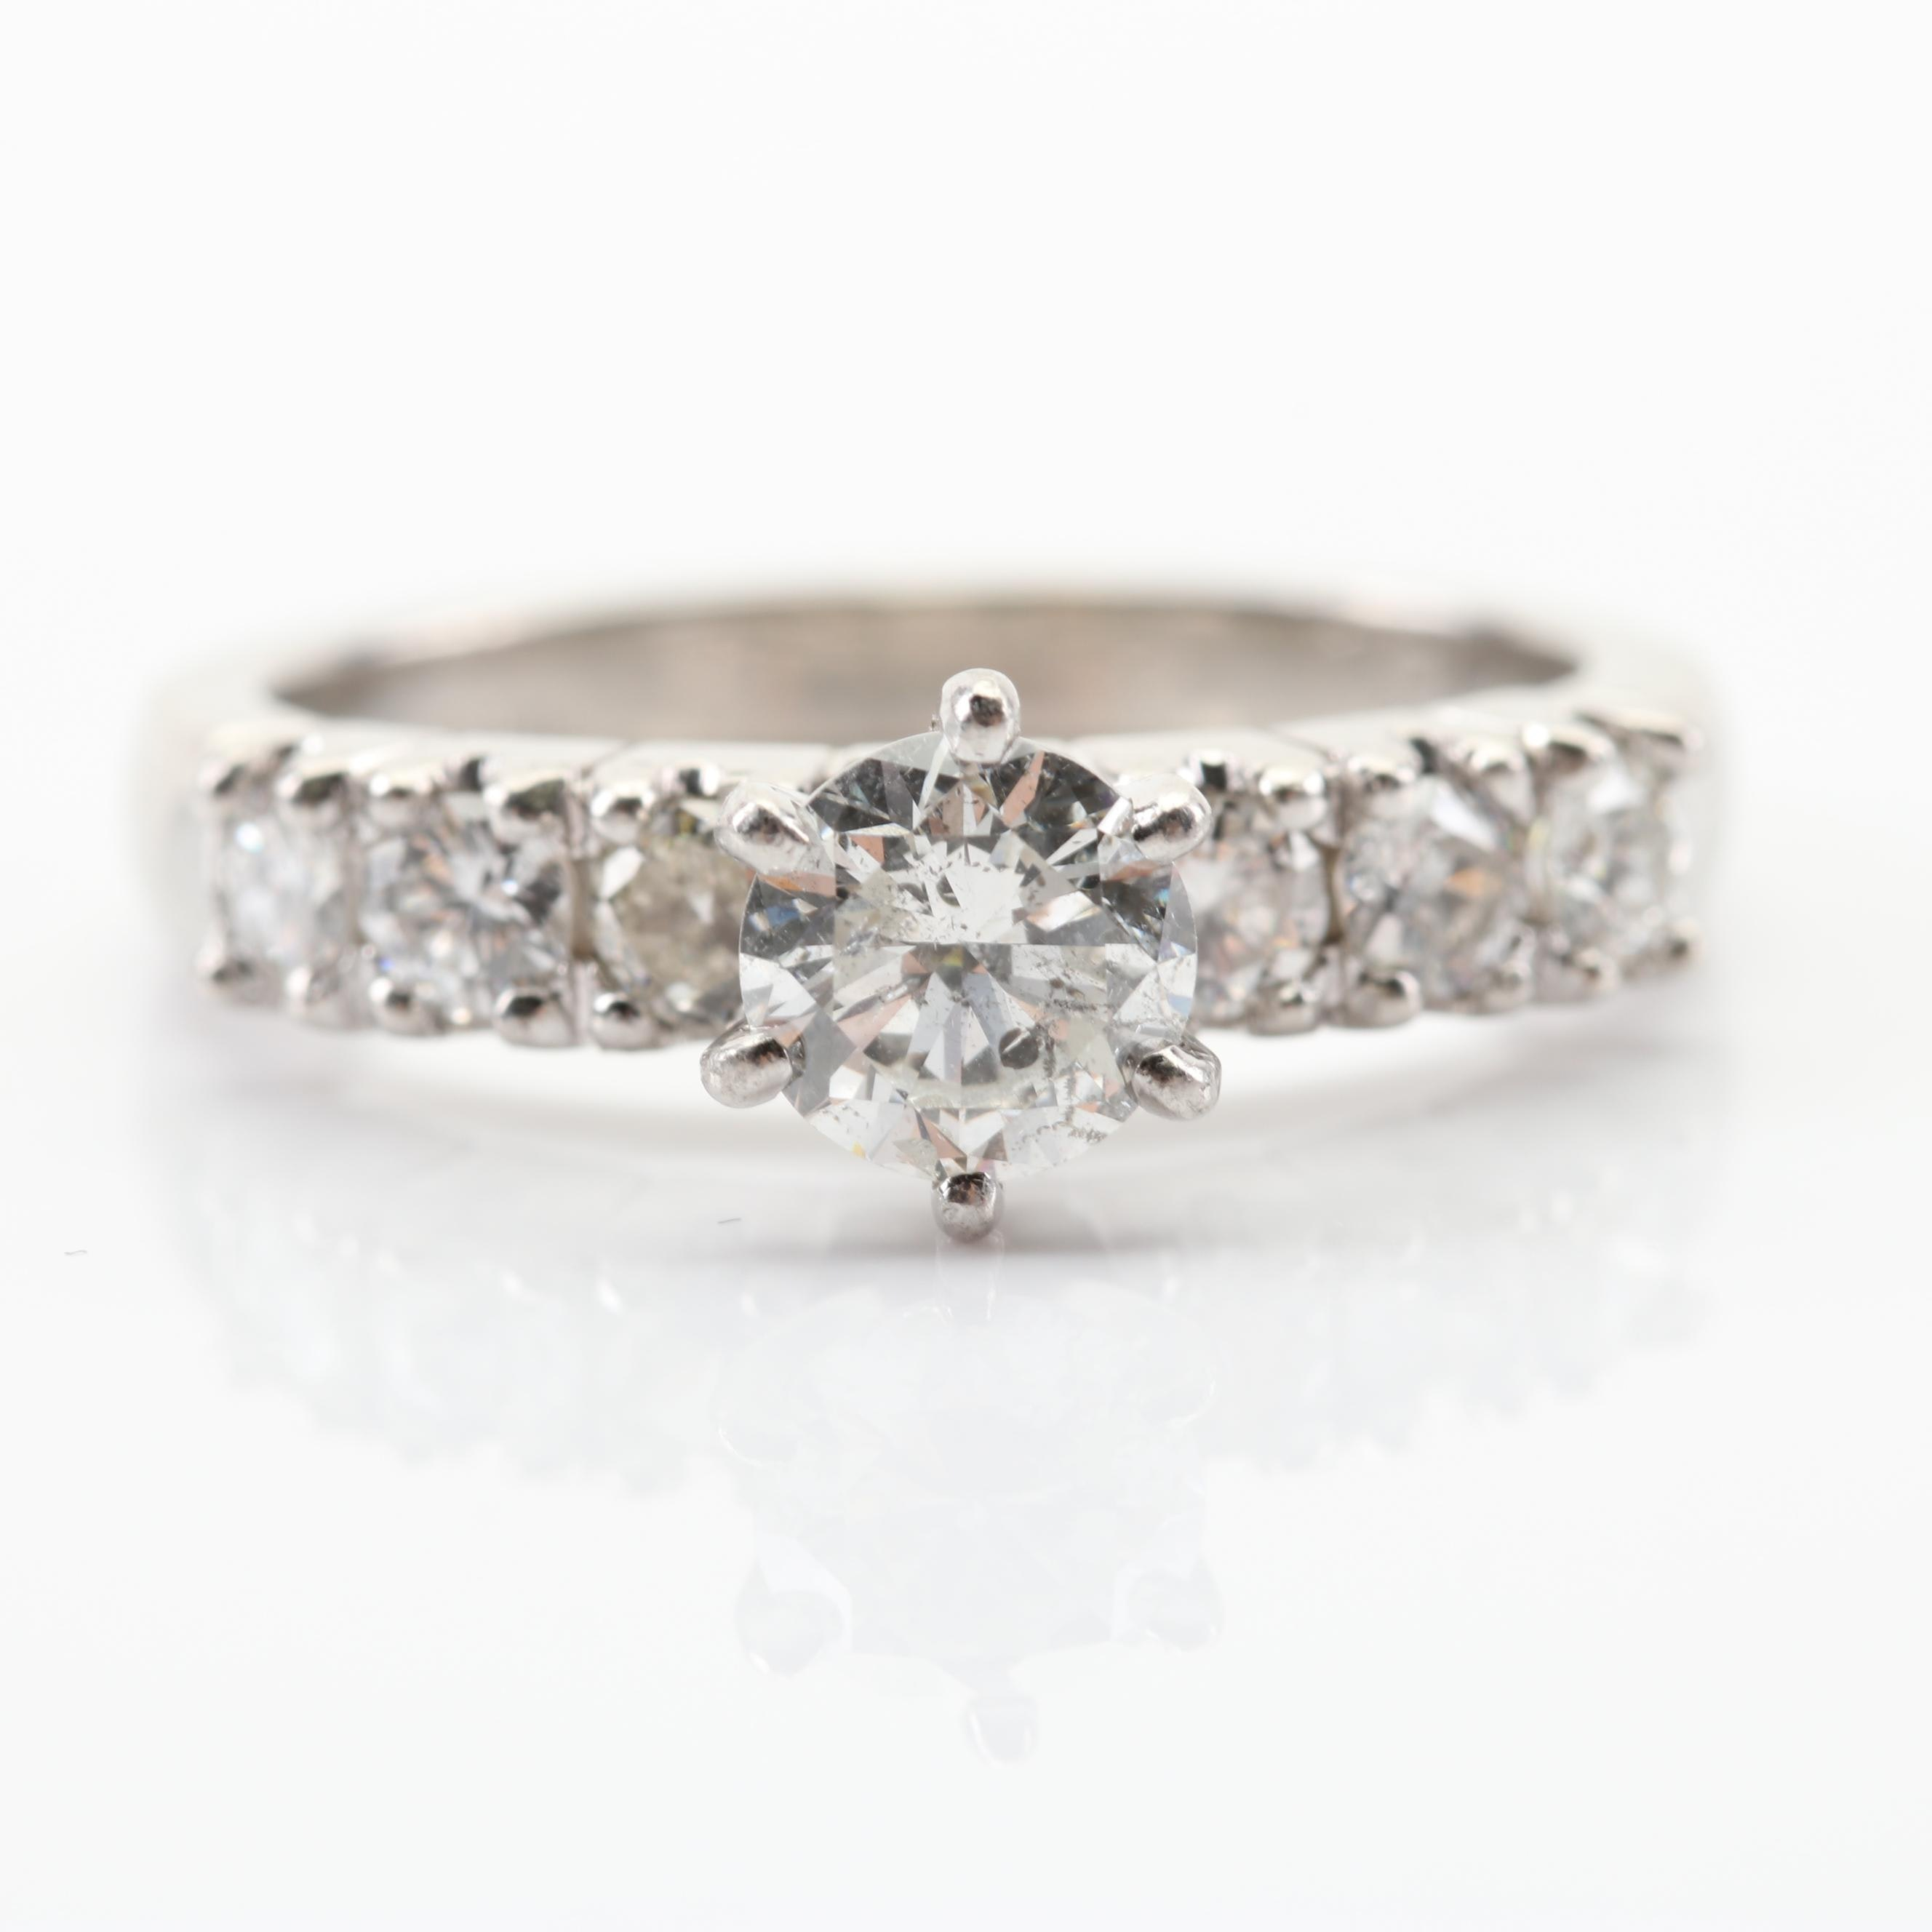 Valentin Magro Platinum Diamond Ring